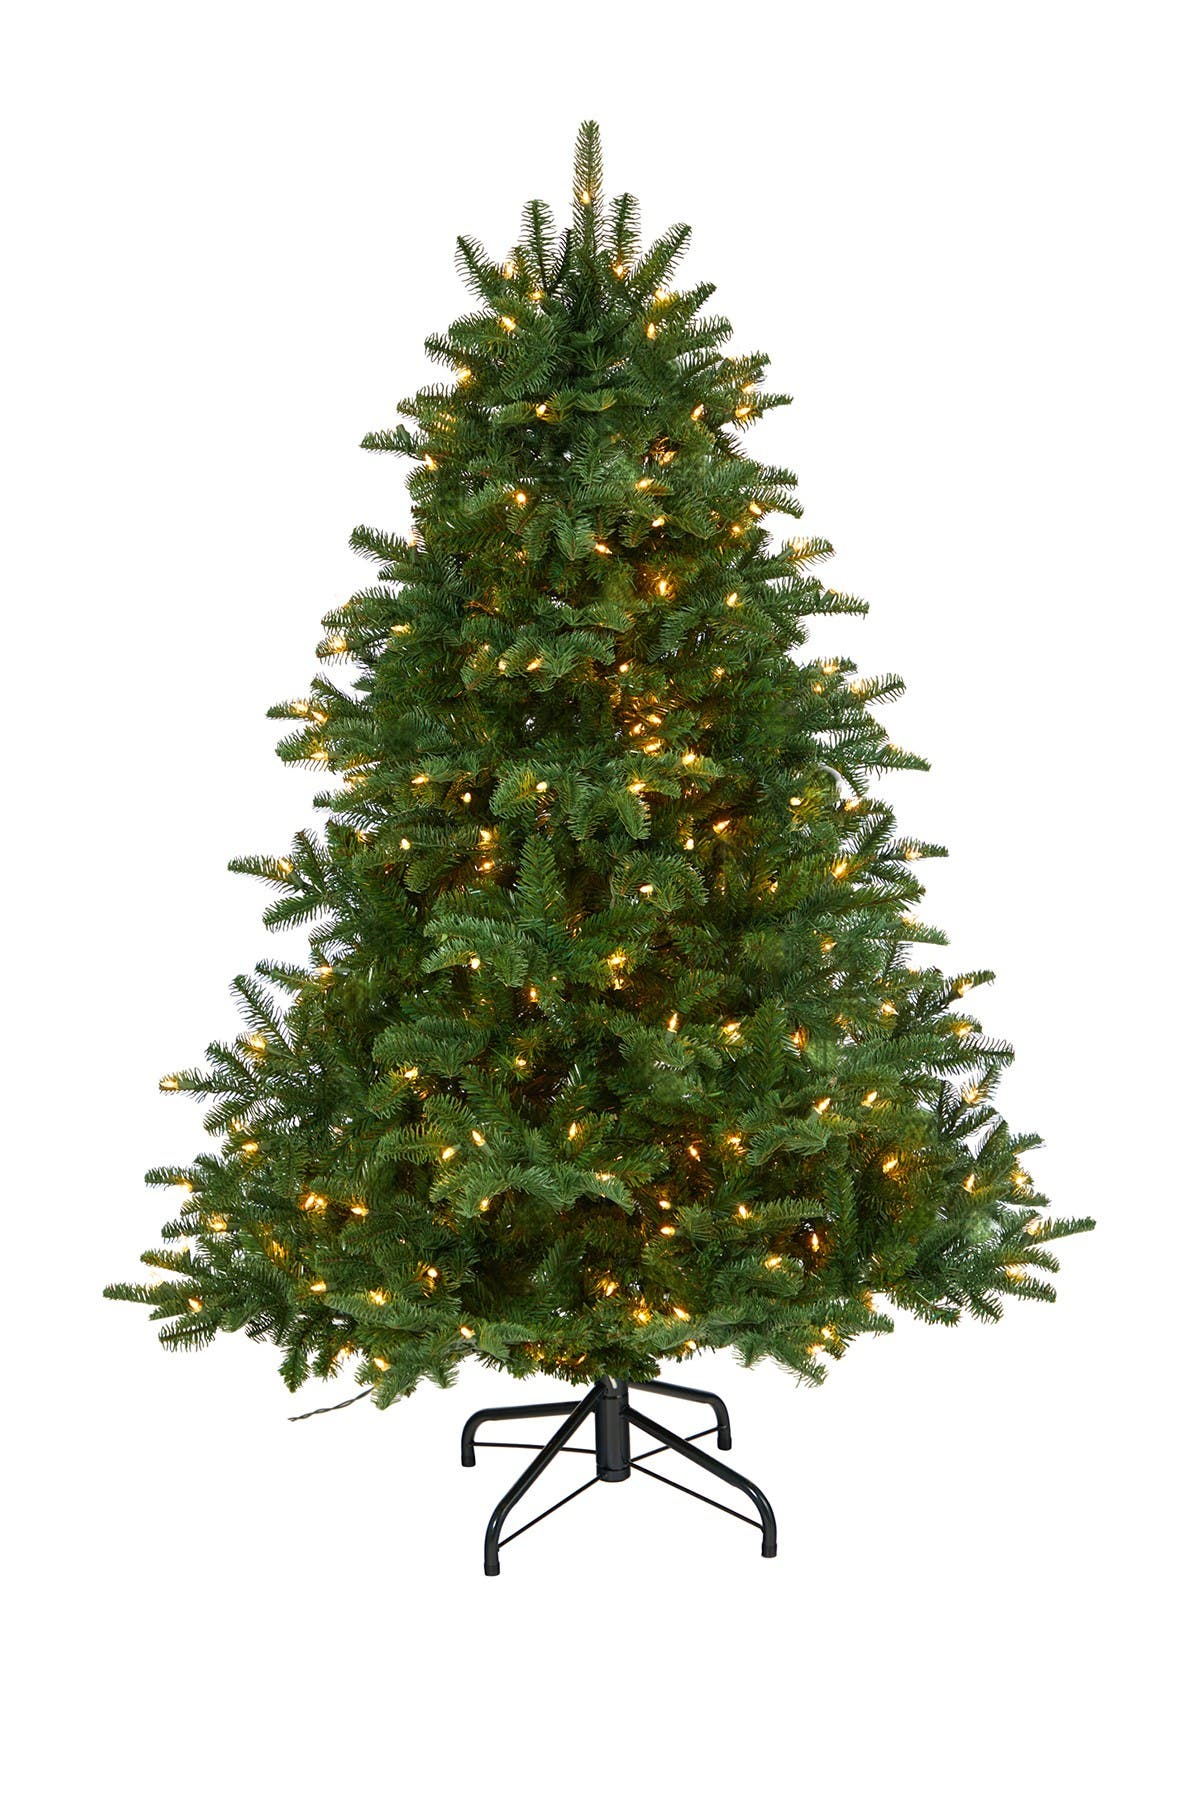 Image of NEARLY NATURAL 5ft. South Carolina Spruce Artificial Christmas Tree with 300 White Warm Lights